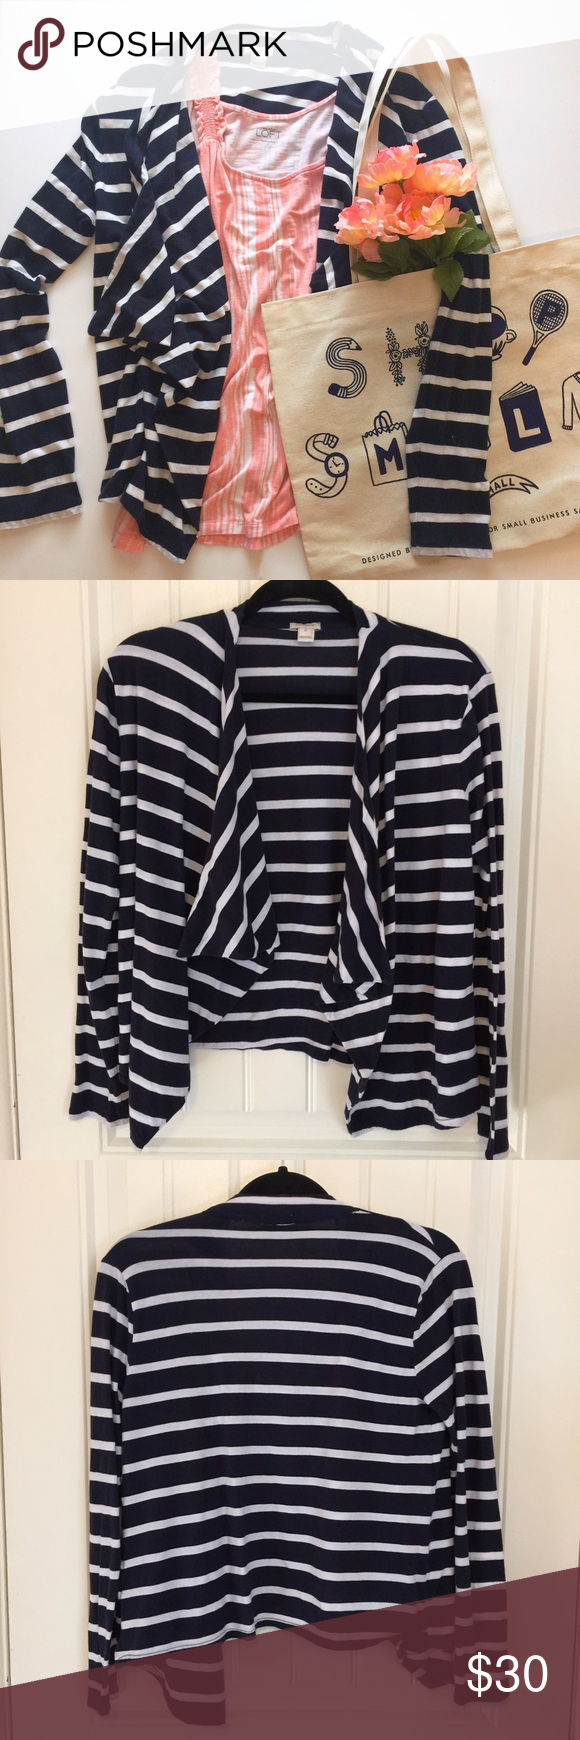 J. Crew Striped Open Jersey Cardigan J. Crew navy and white ...